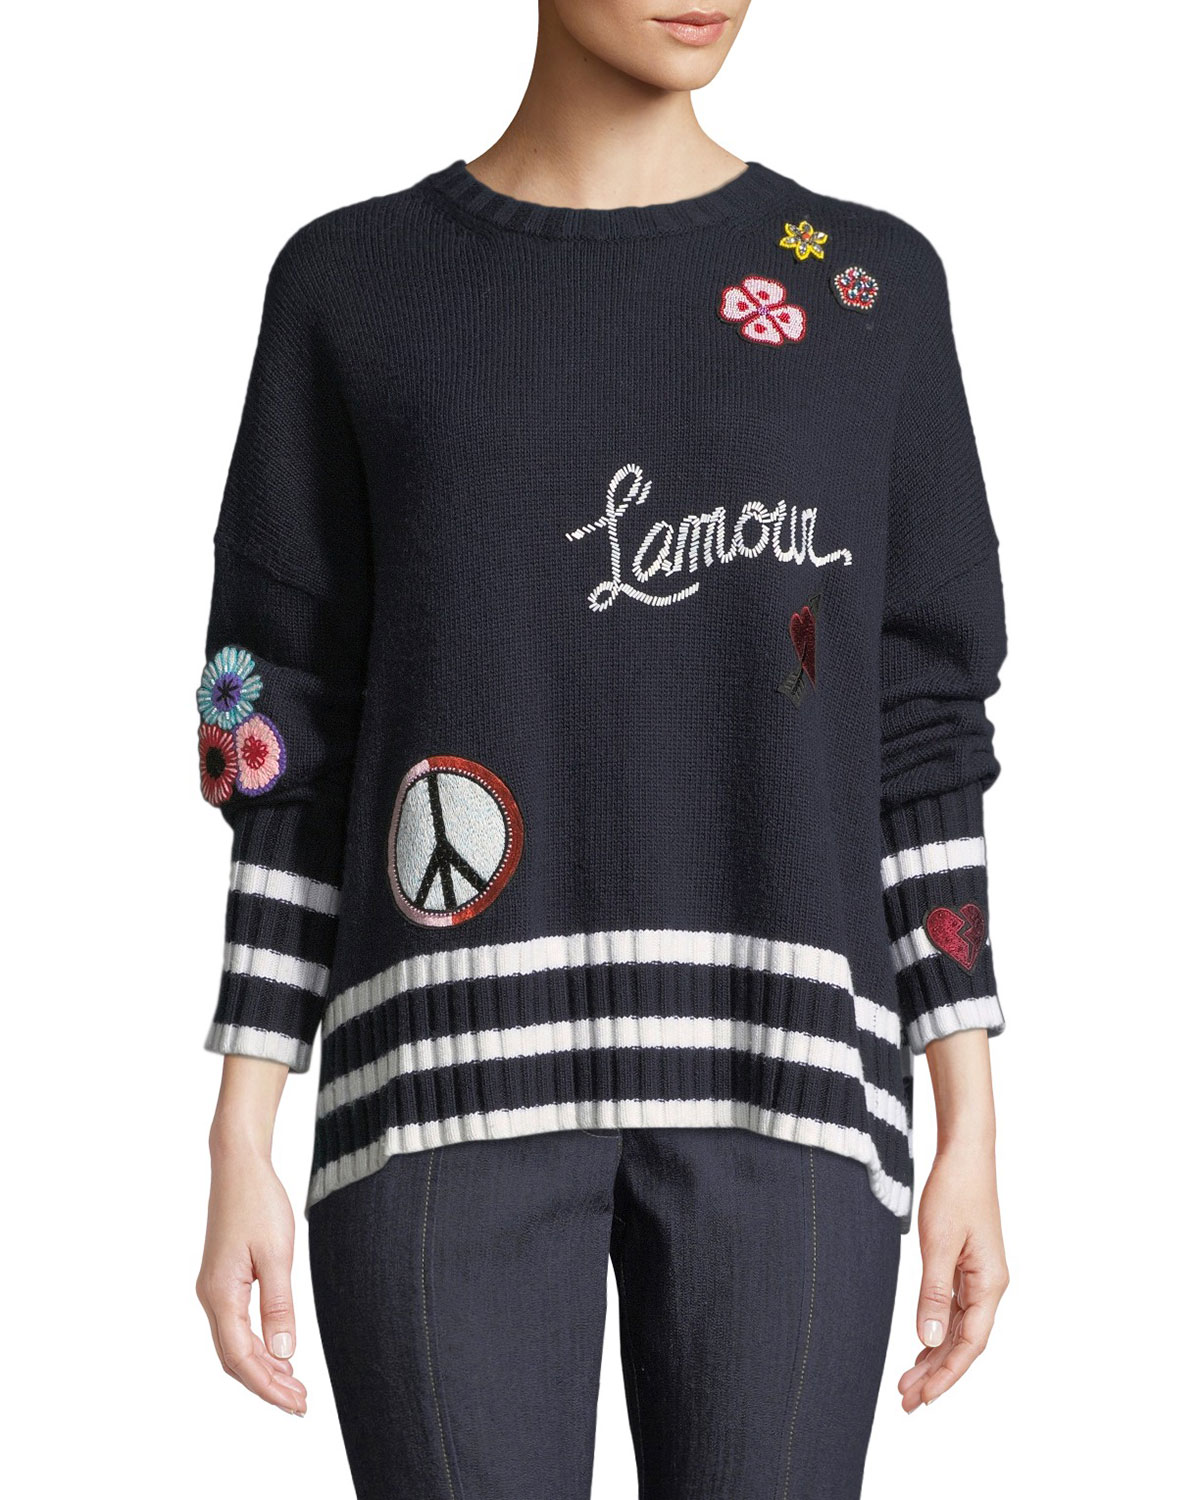 Leona Embroidered Graphic Pullover Sweater in Navy